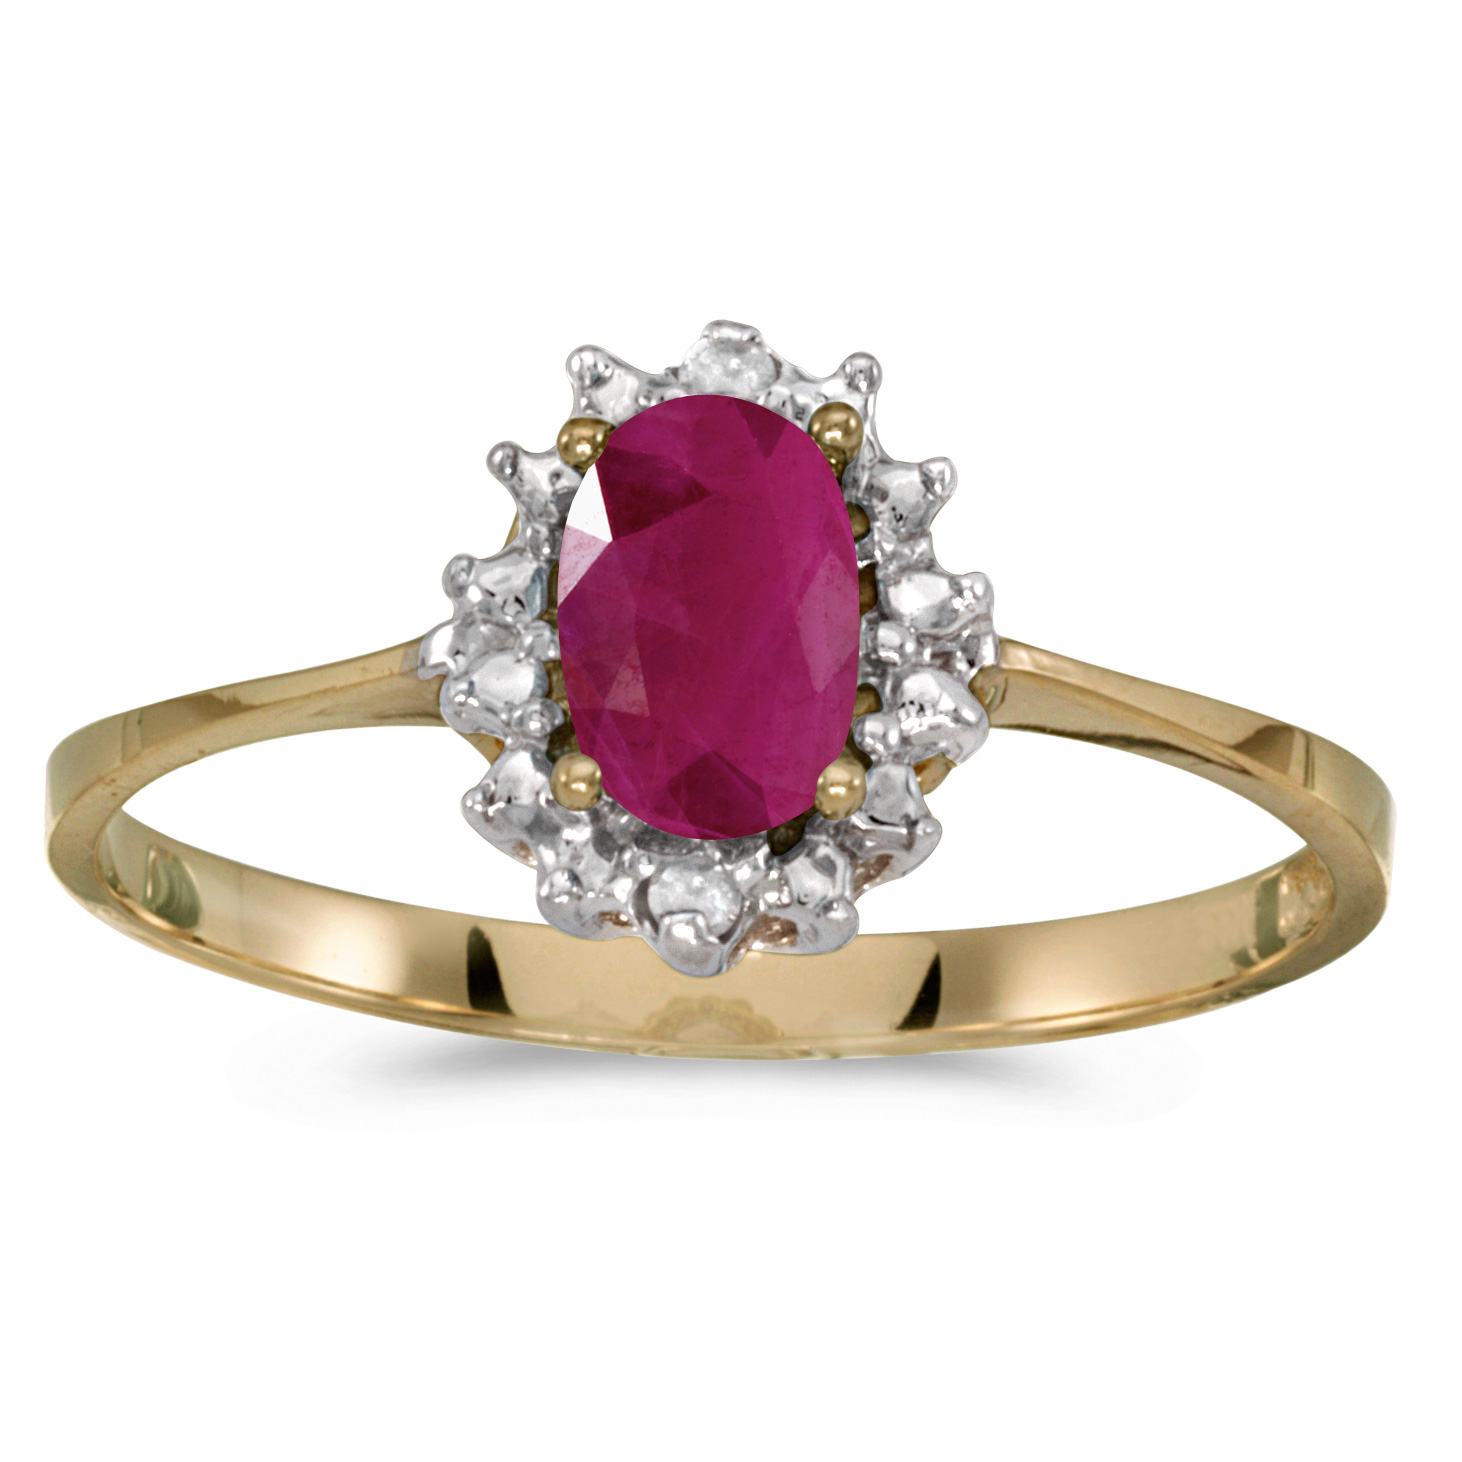 10k Yellow Gold Oval Ruby And Diamond Ring by